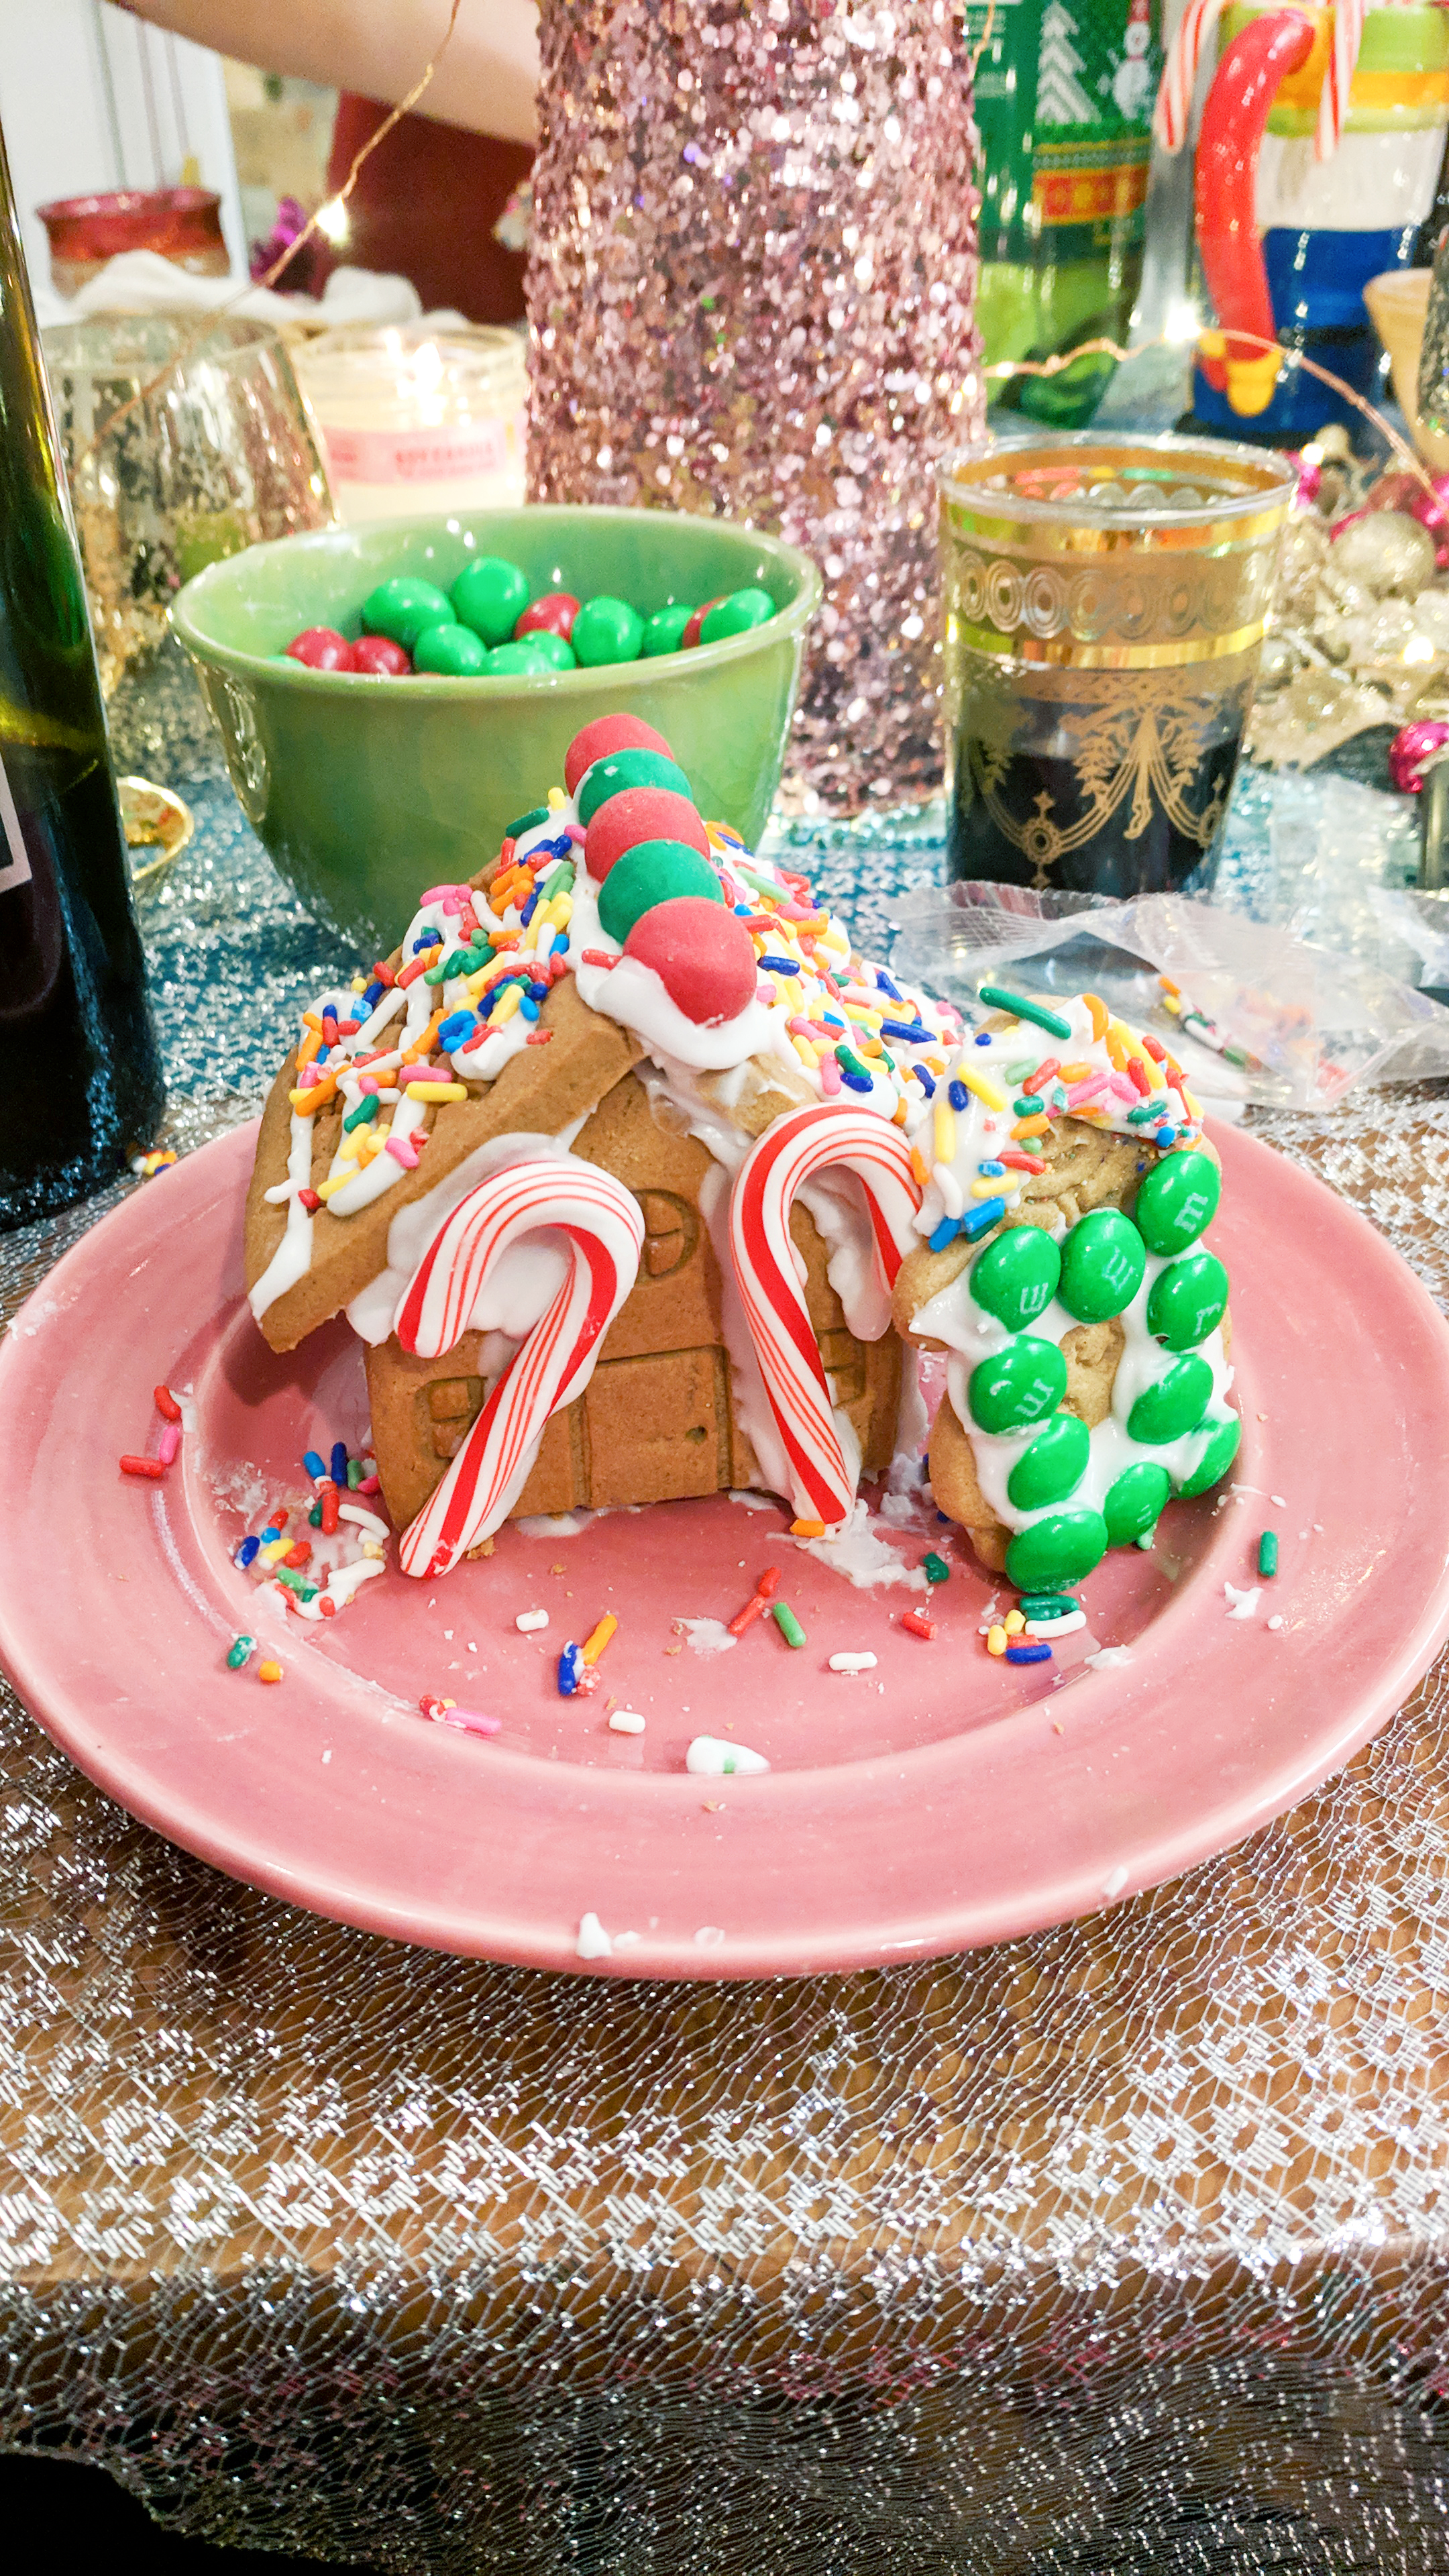 gingerbread house making party diy christmas ideas - Hey Mishka (22)